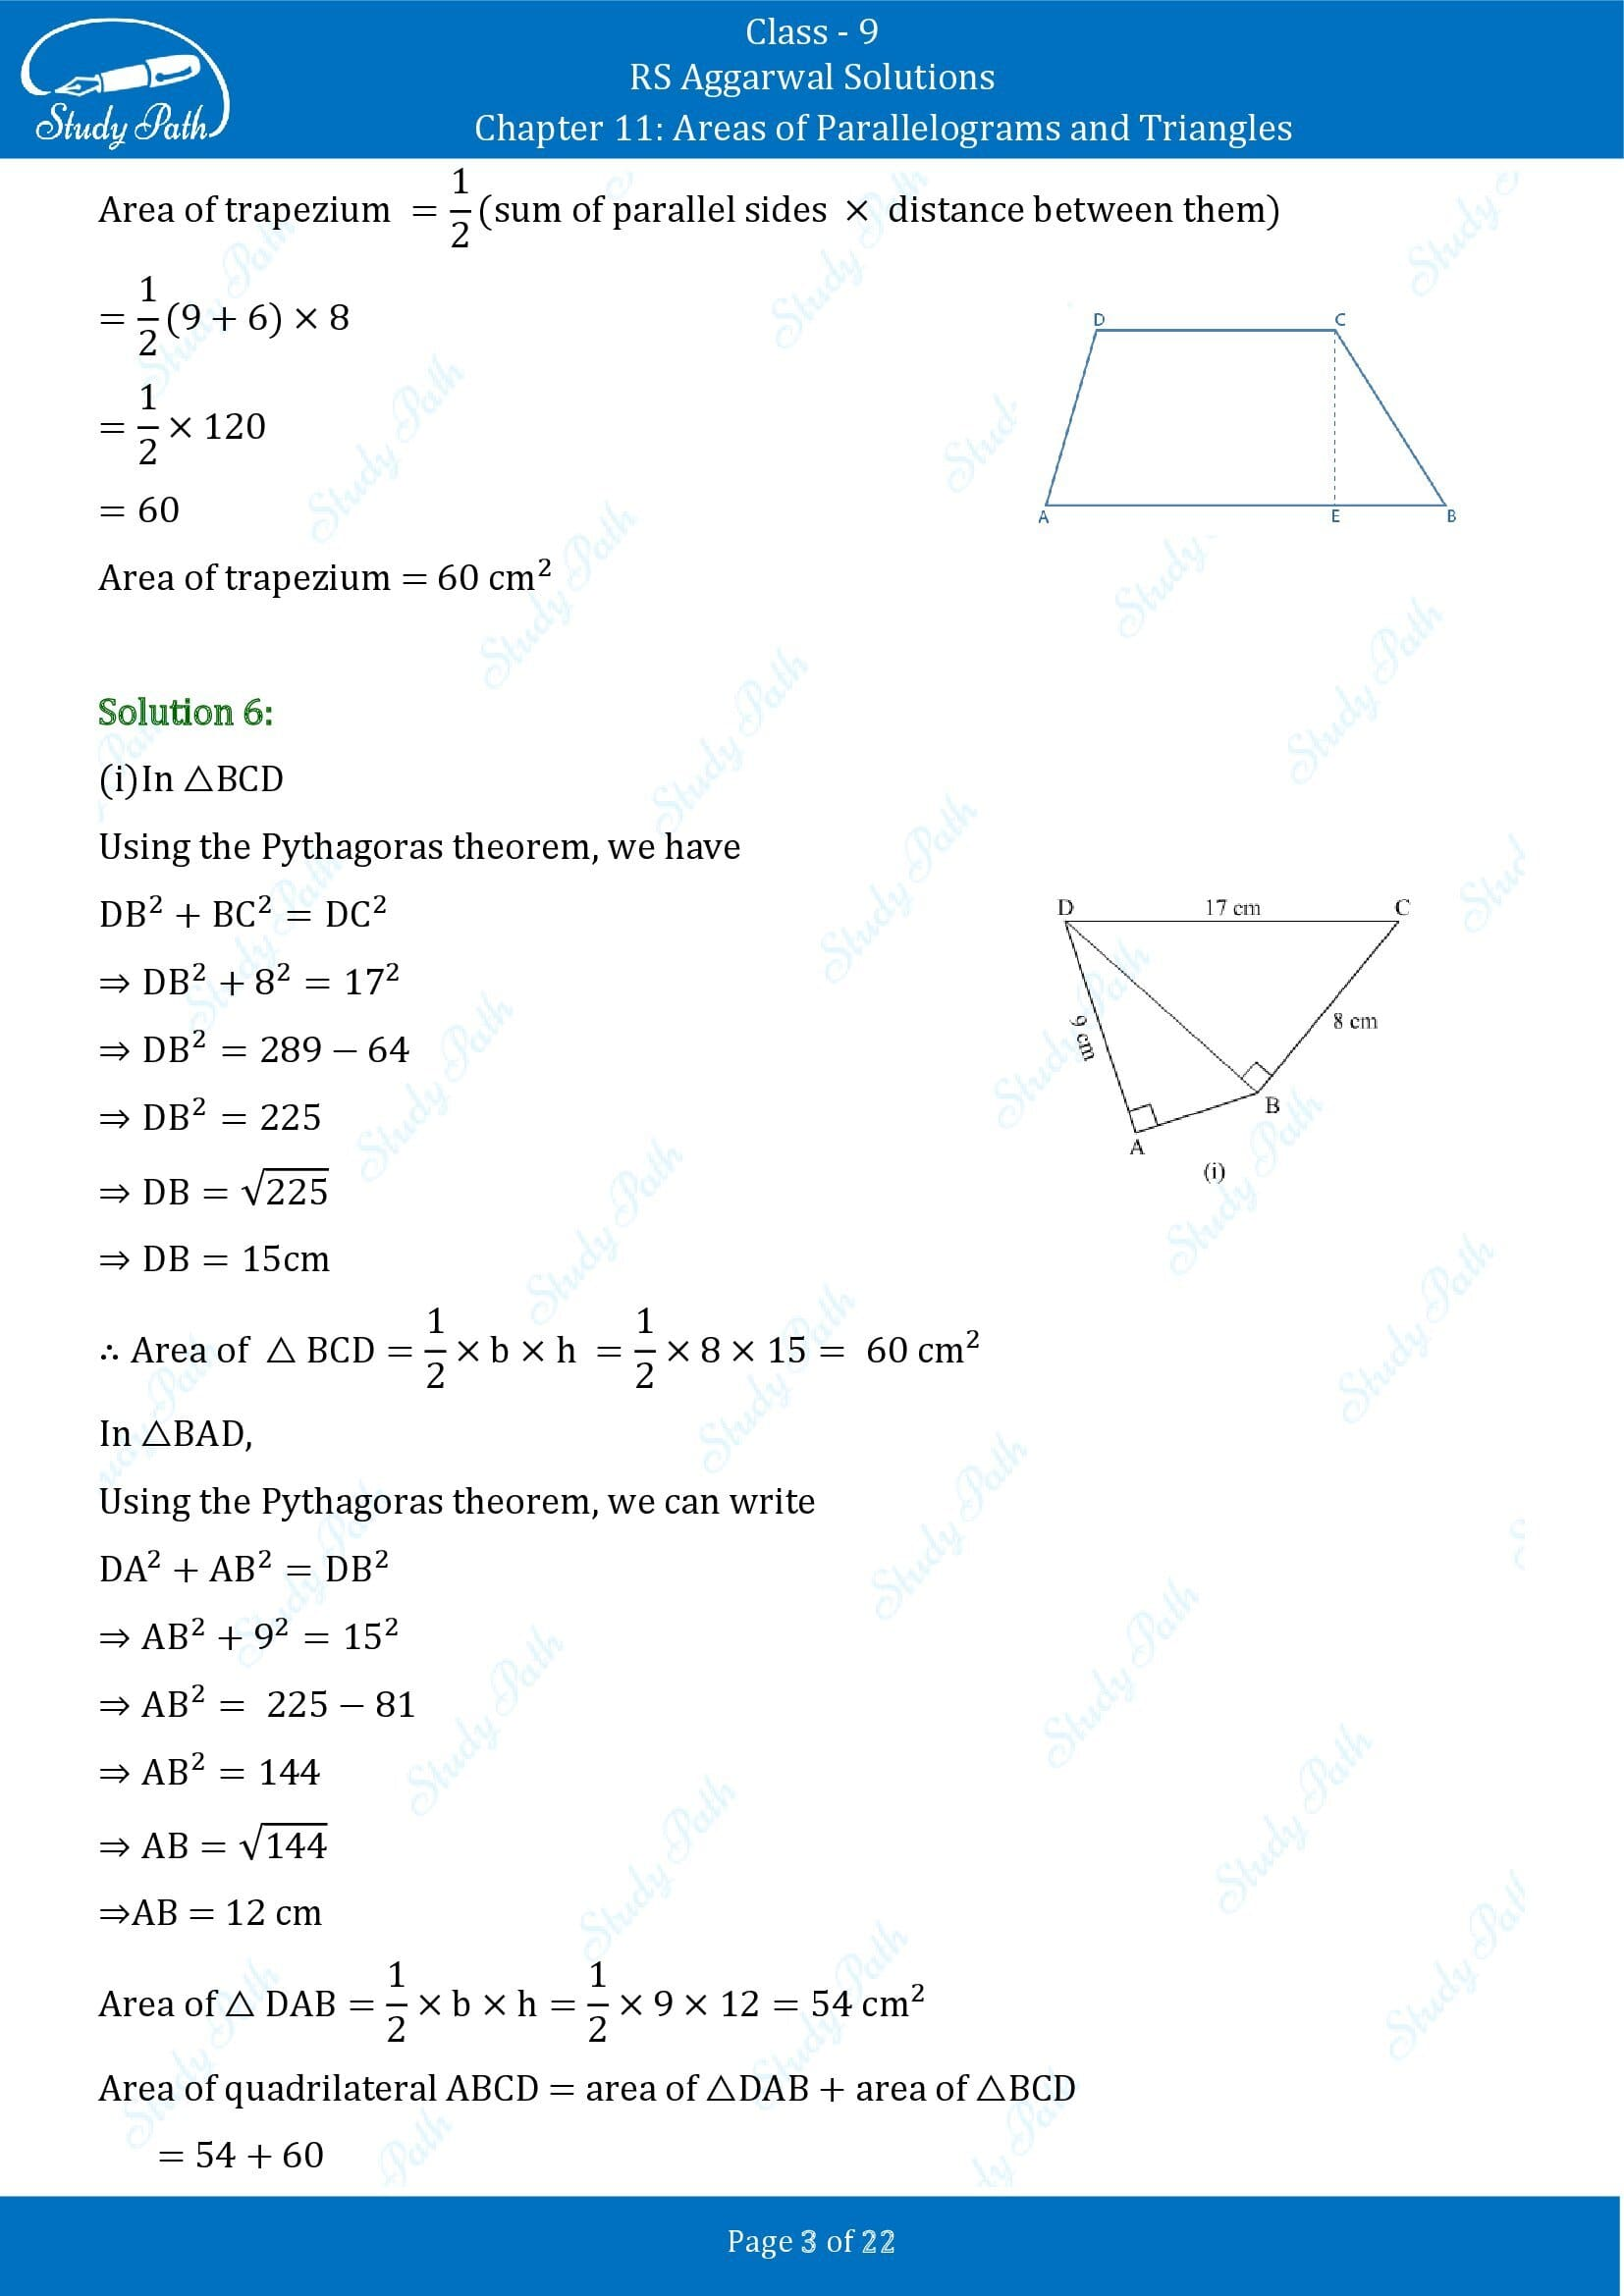 RS Aggarwal Solutions Class 9 Chapter 11 Areas of Parallelograms and Triangles Exercise 11 00003